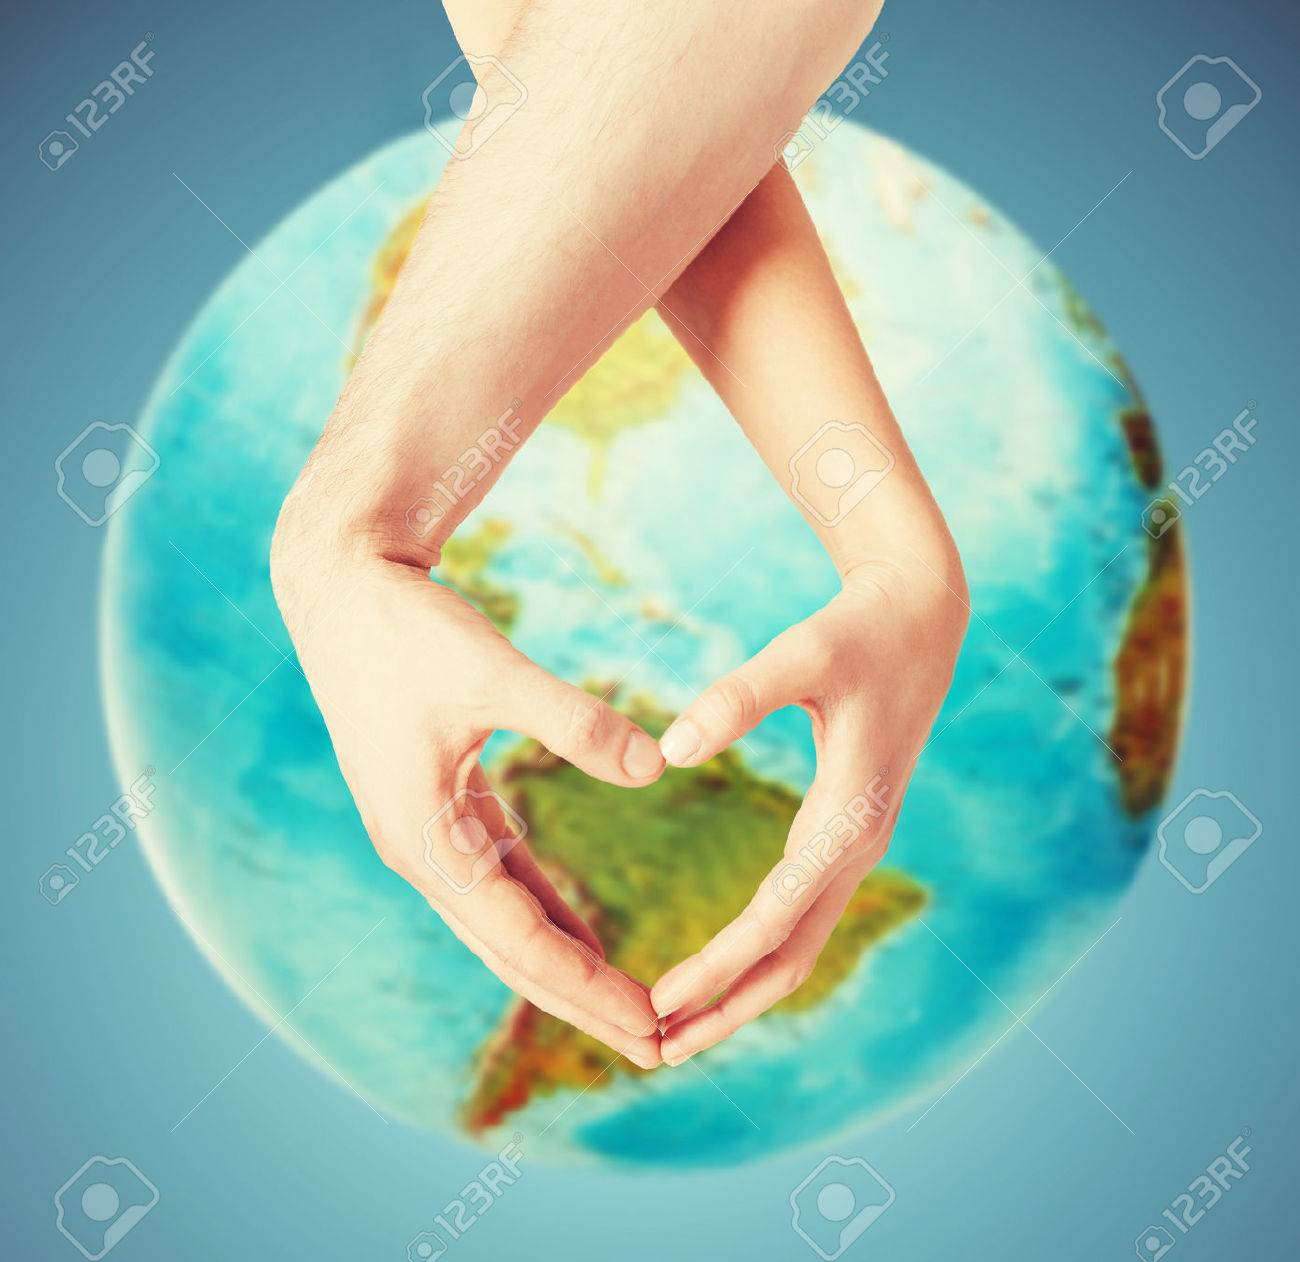 people, peace, love, life and environmental concept - close up of human hands showing heart shape gesture over earth globe and blue background - 54407059